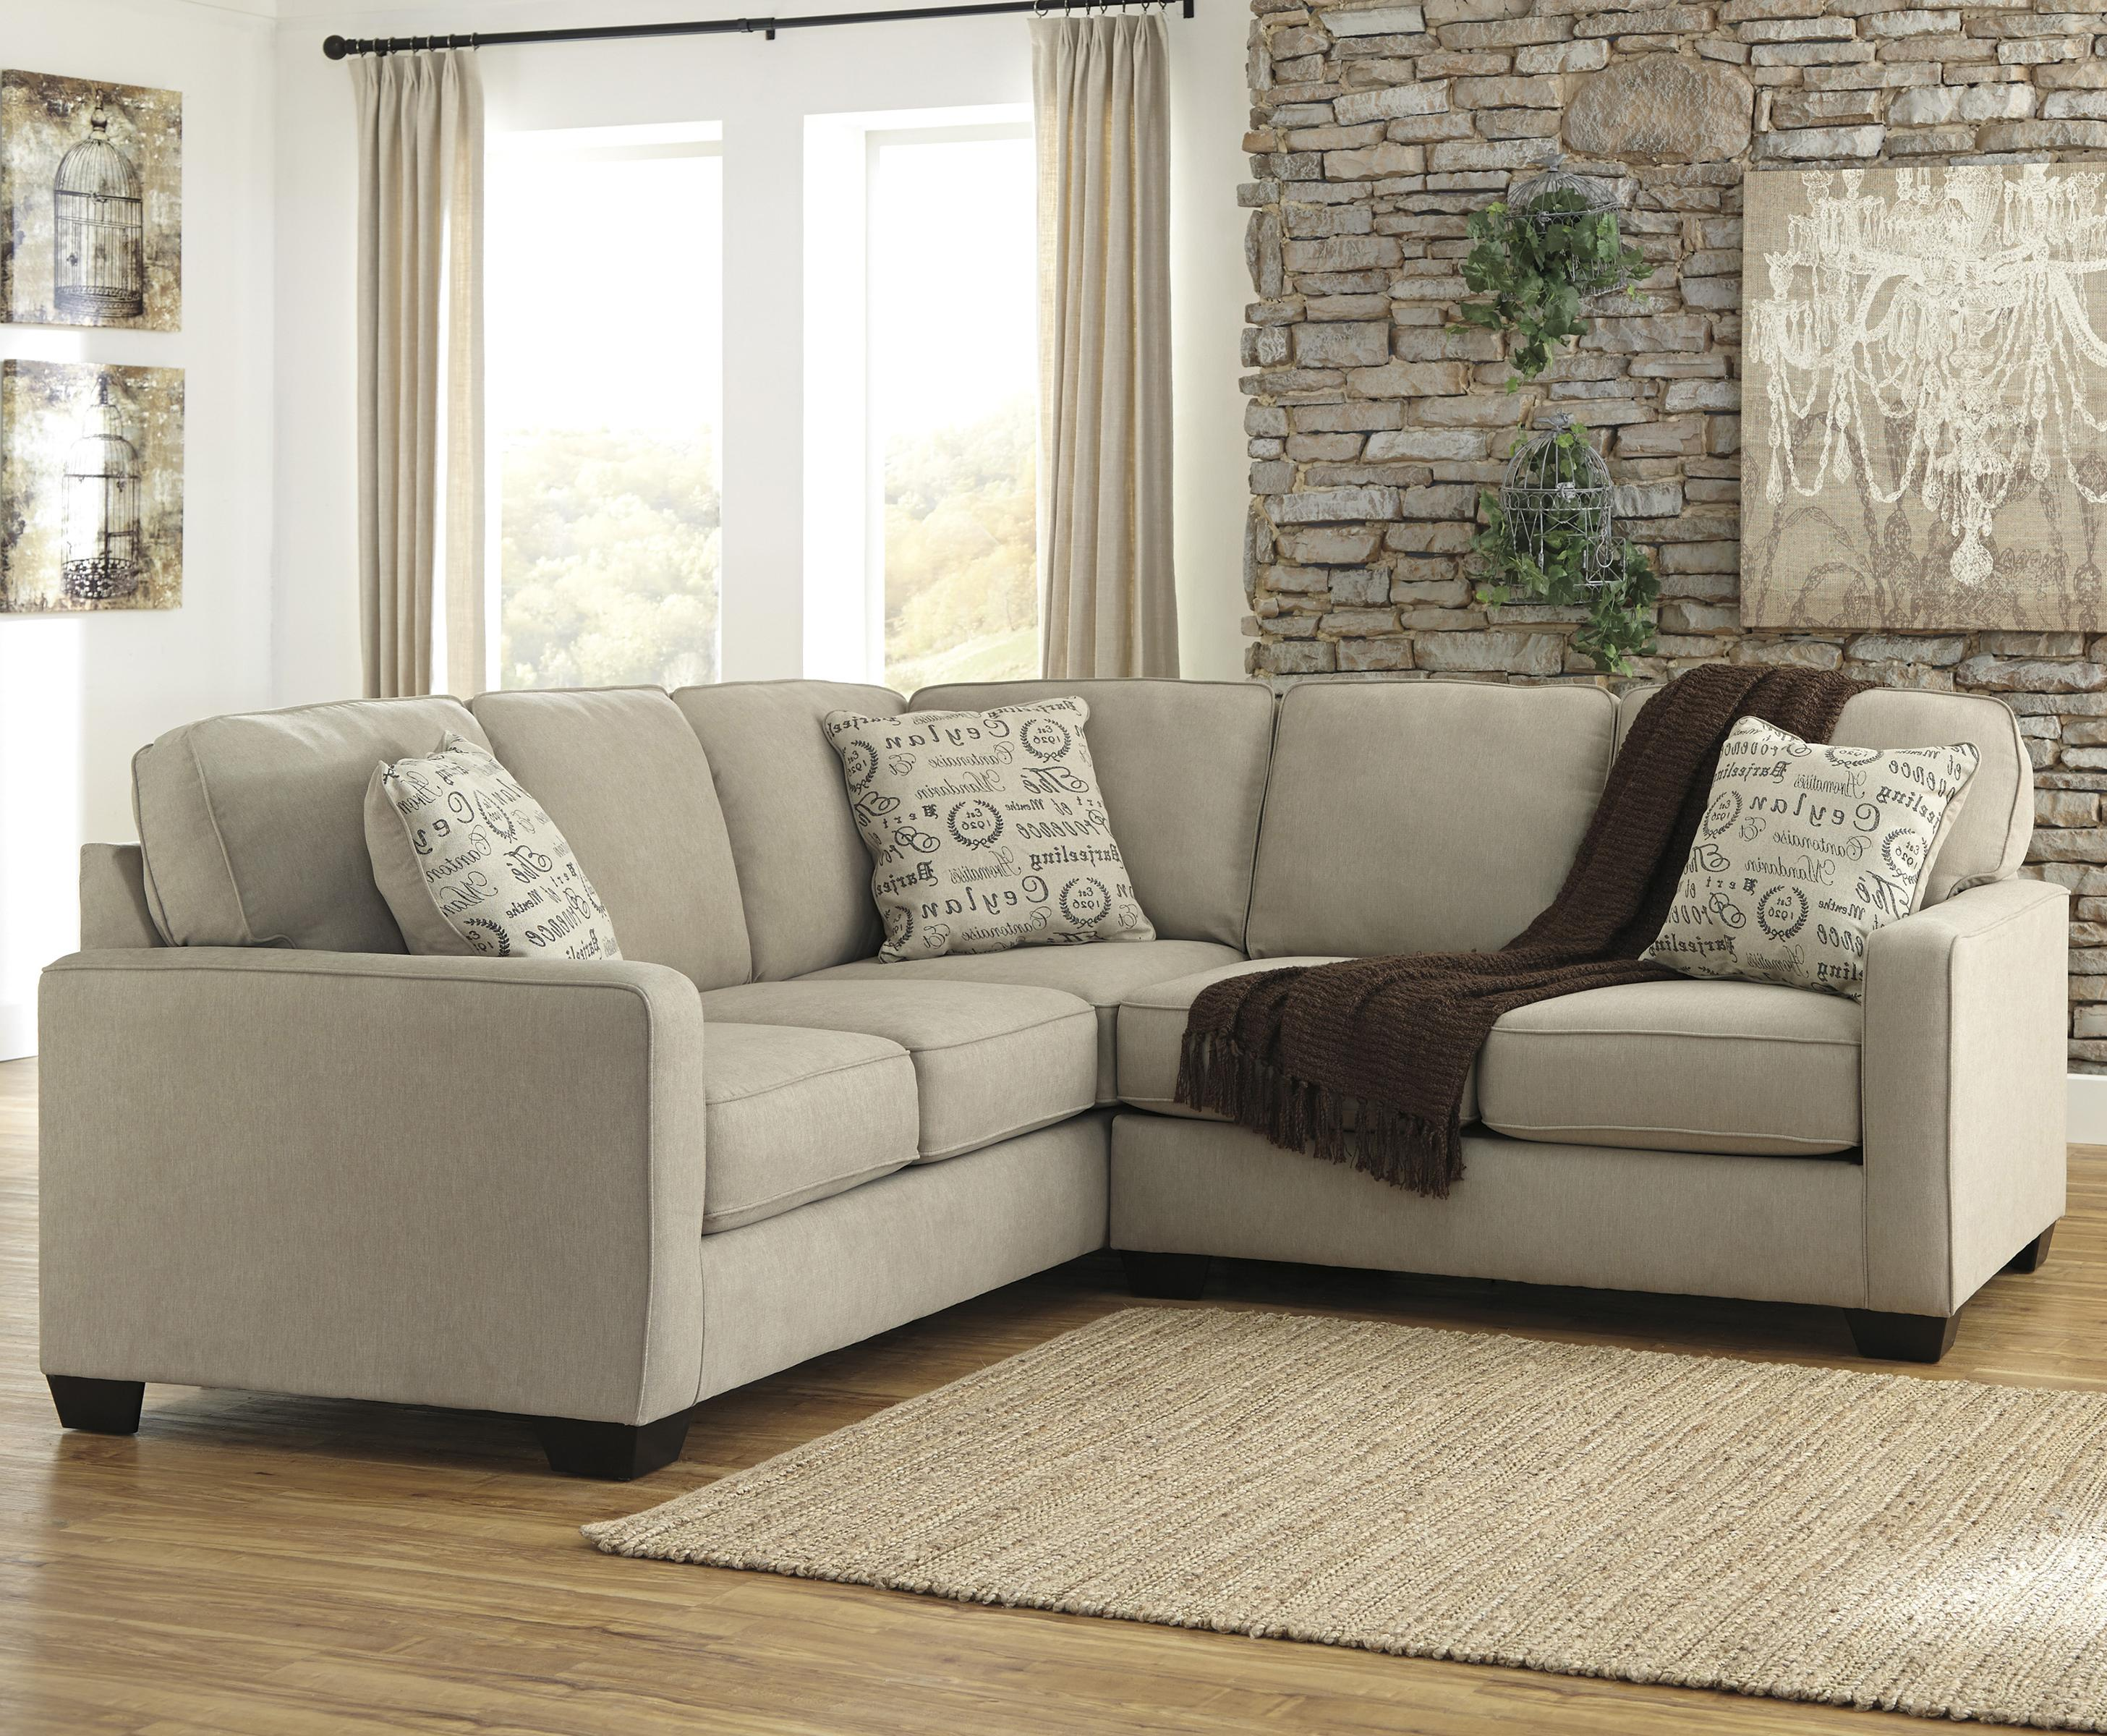 2 Piece Sectional With Right Loveseat By Signature Design By Ashley Wolf And Gardiner Wolf